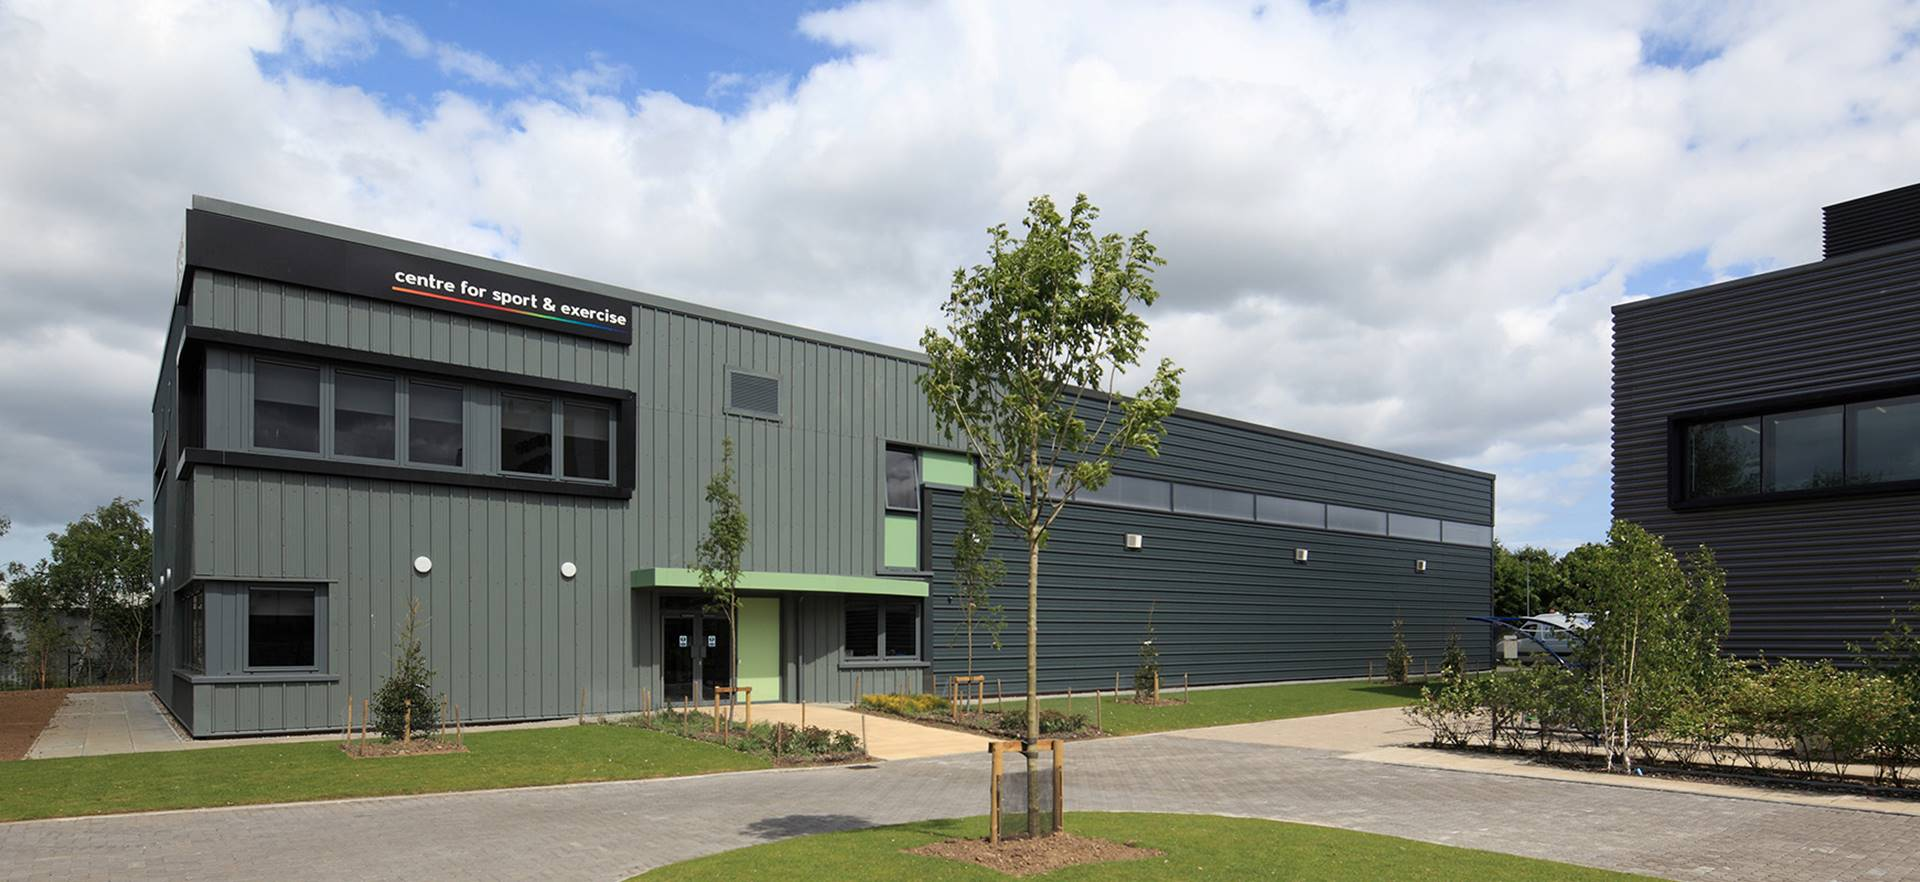 Stevenson College Sports Facility, Edinburgh